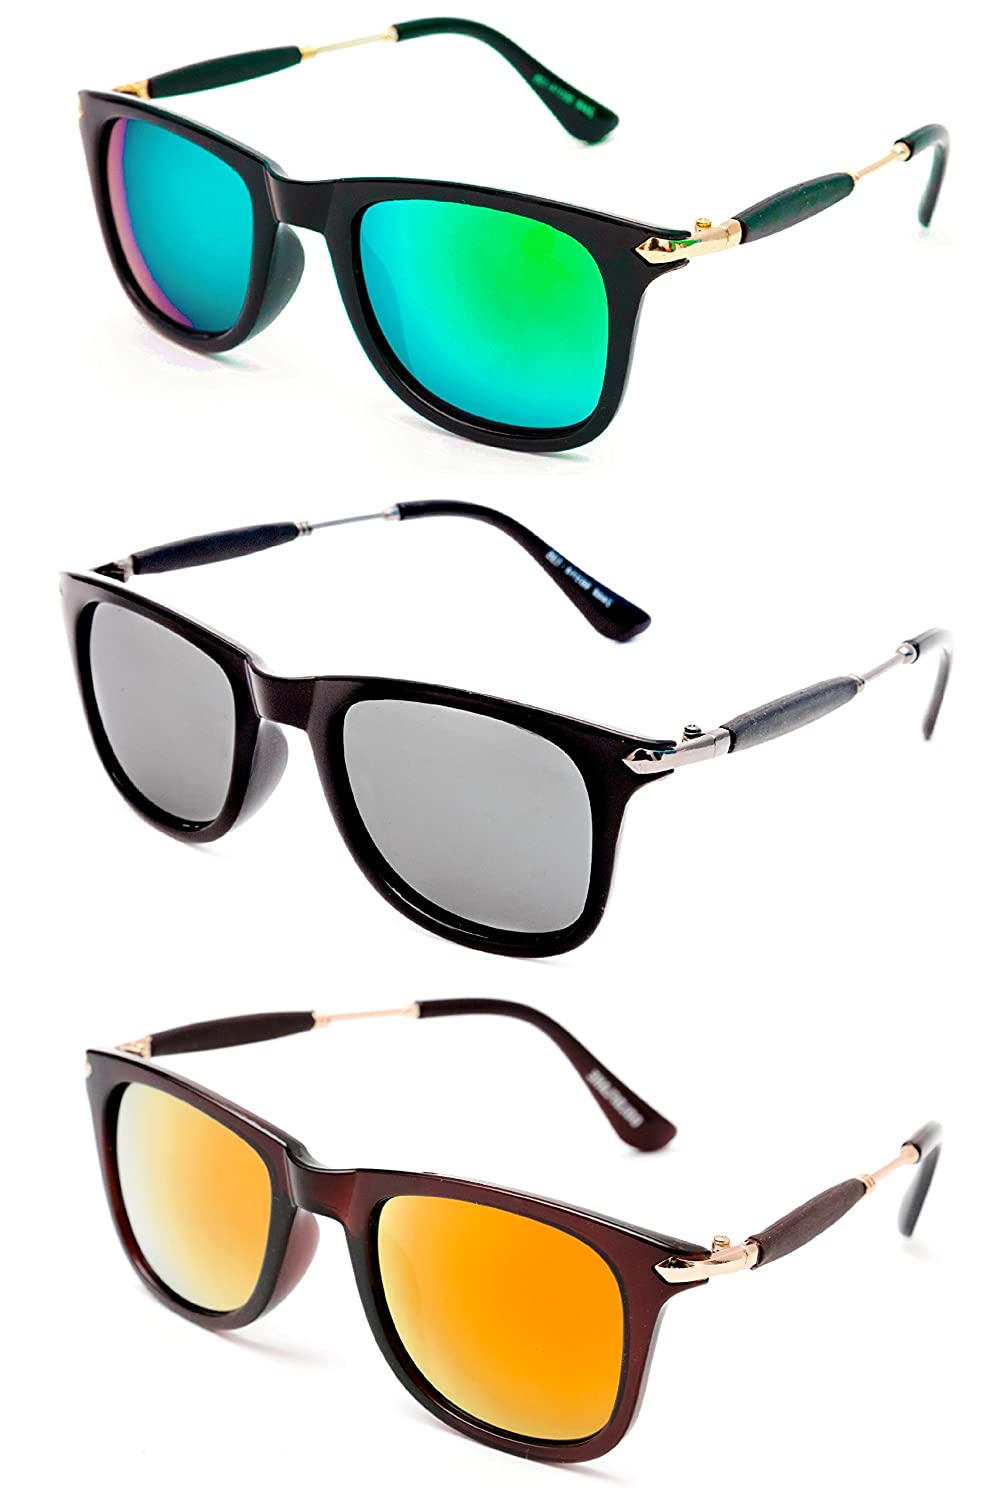 31b46c1b63b TheWhoop Super Combo UV Protected New Mirrored Green